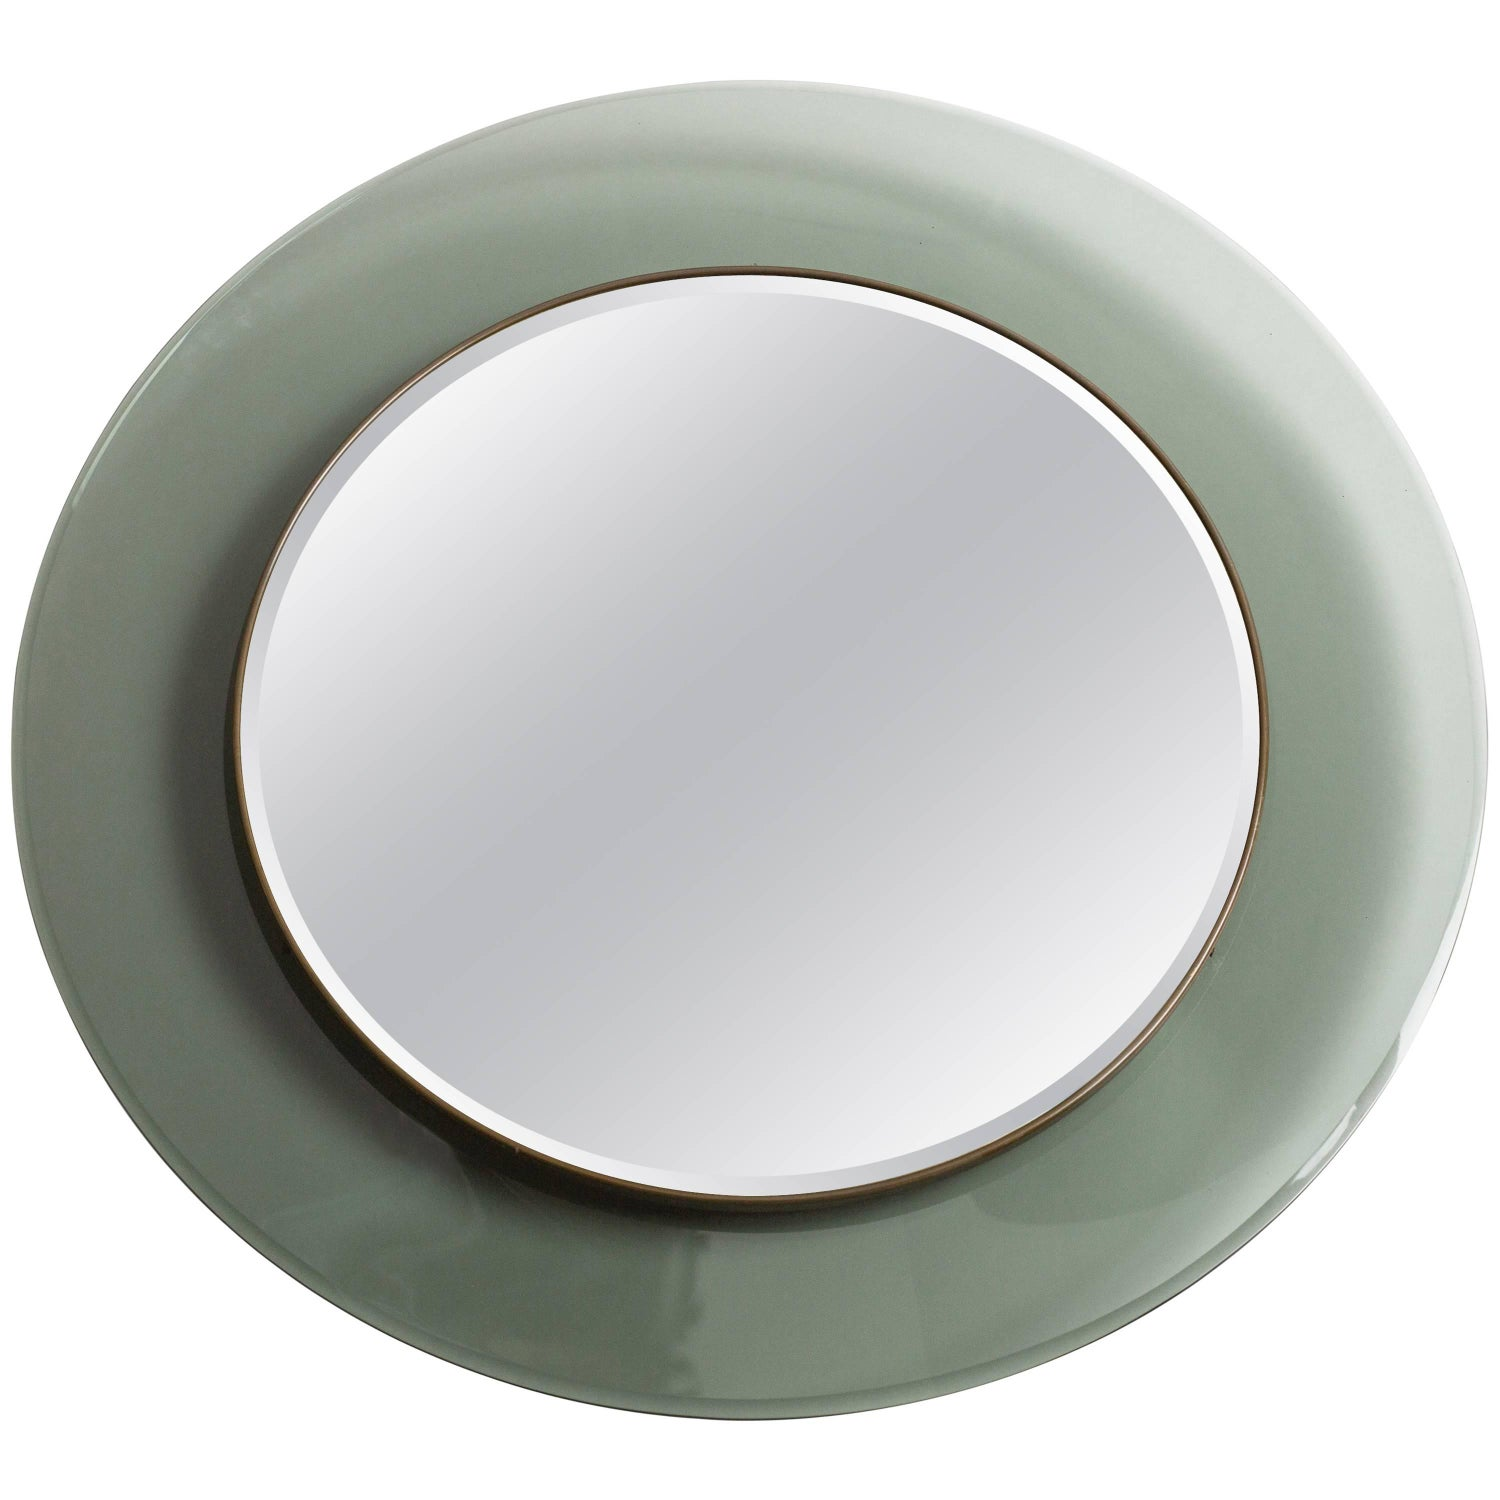 1960s Mirrors - 1,132 For Sale at 1stdibs